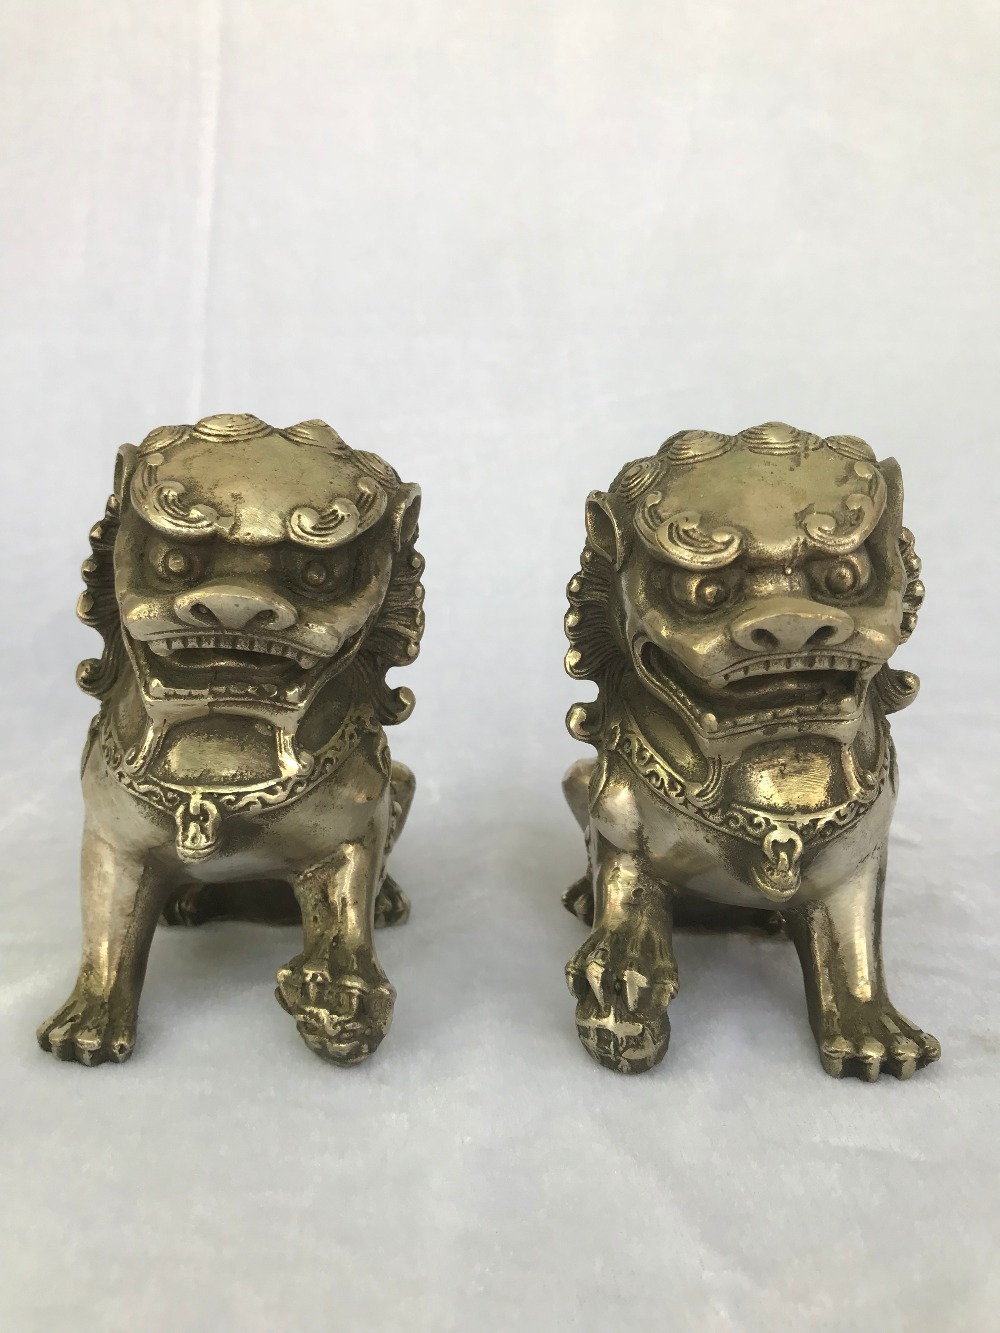 Chinese Copper Statue Lions Pair Might Terrorize Get rid of evilChinese Copper Statue Lions Pair Might Terrorize Get rid of evil